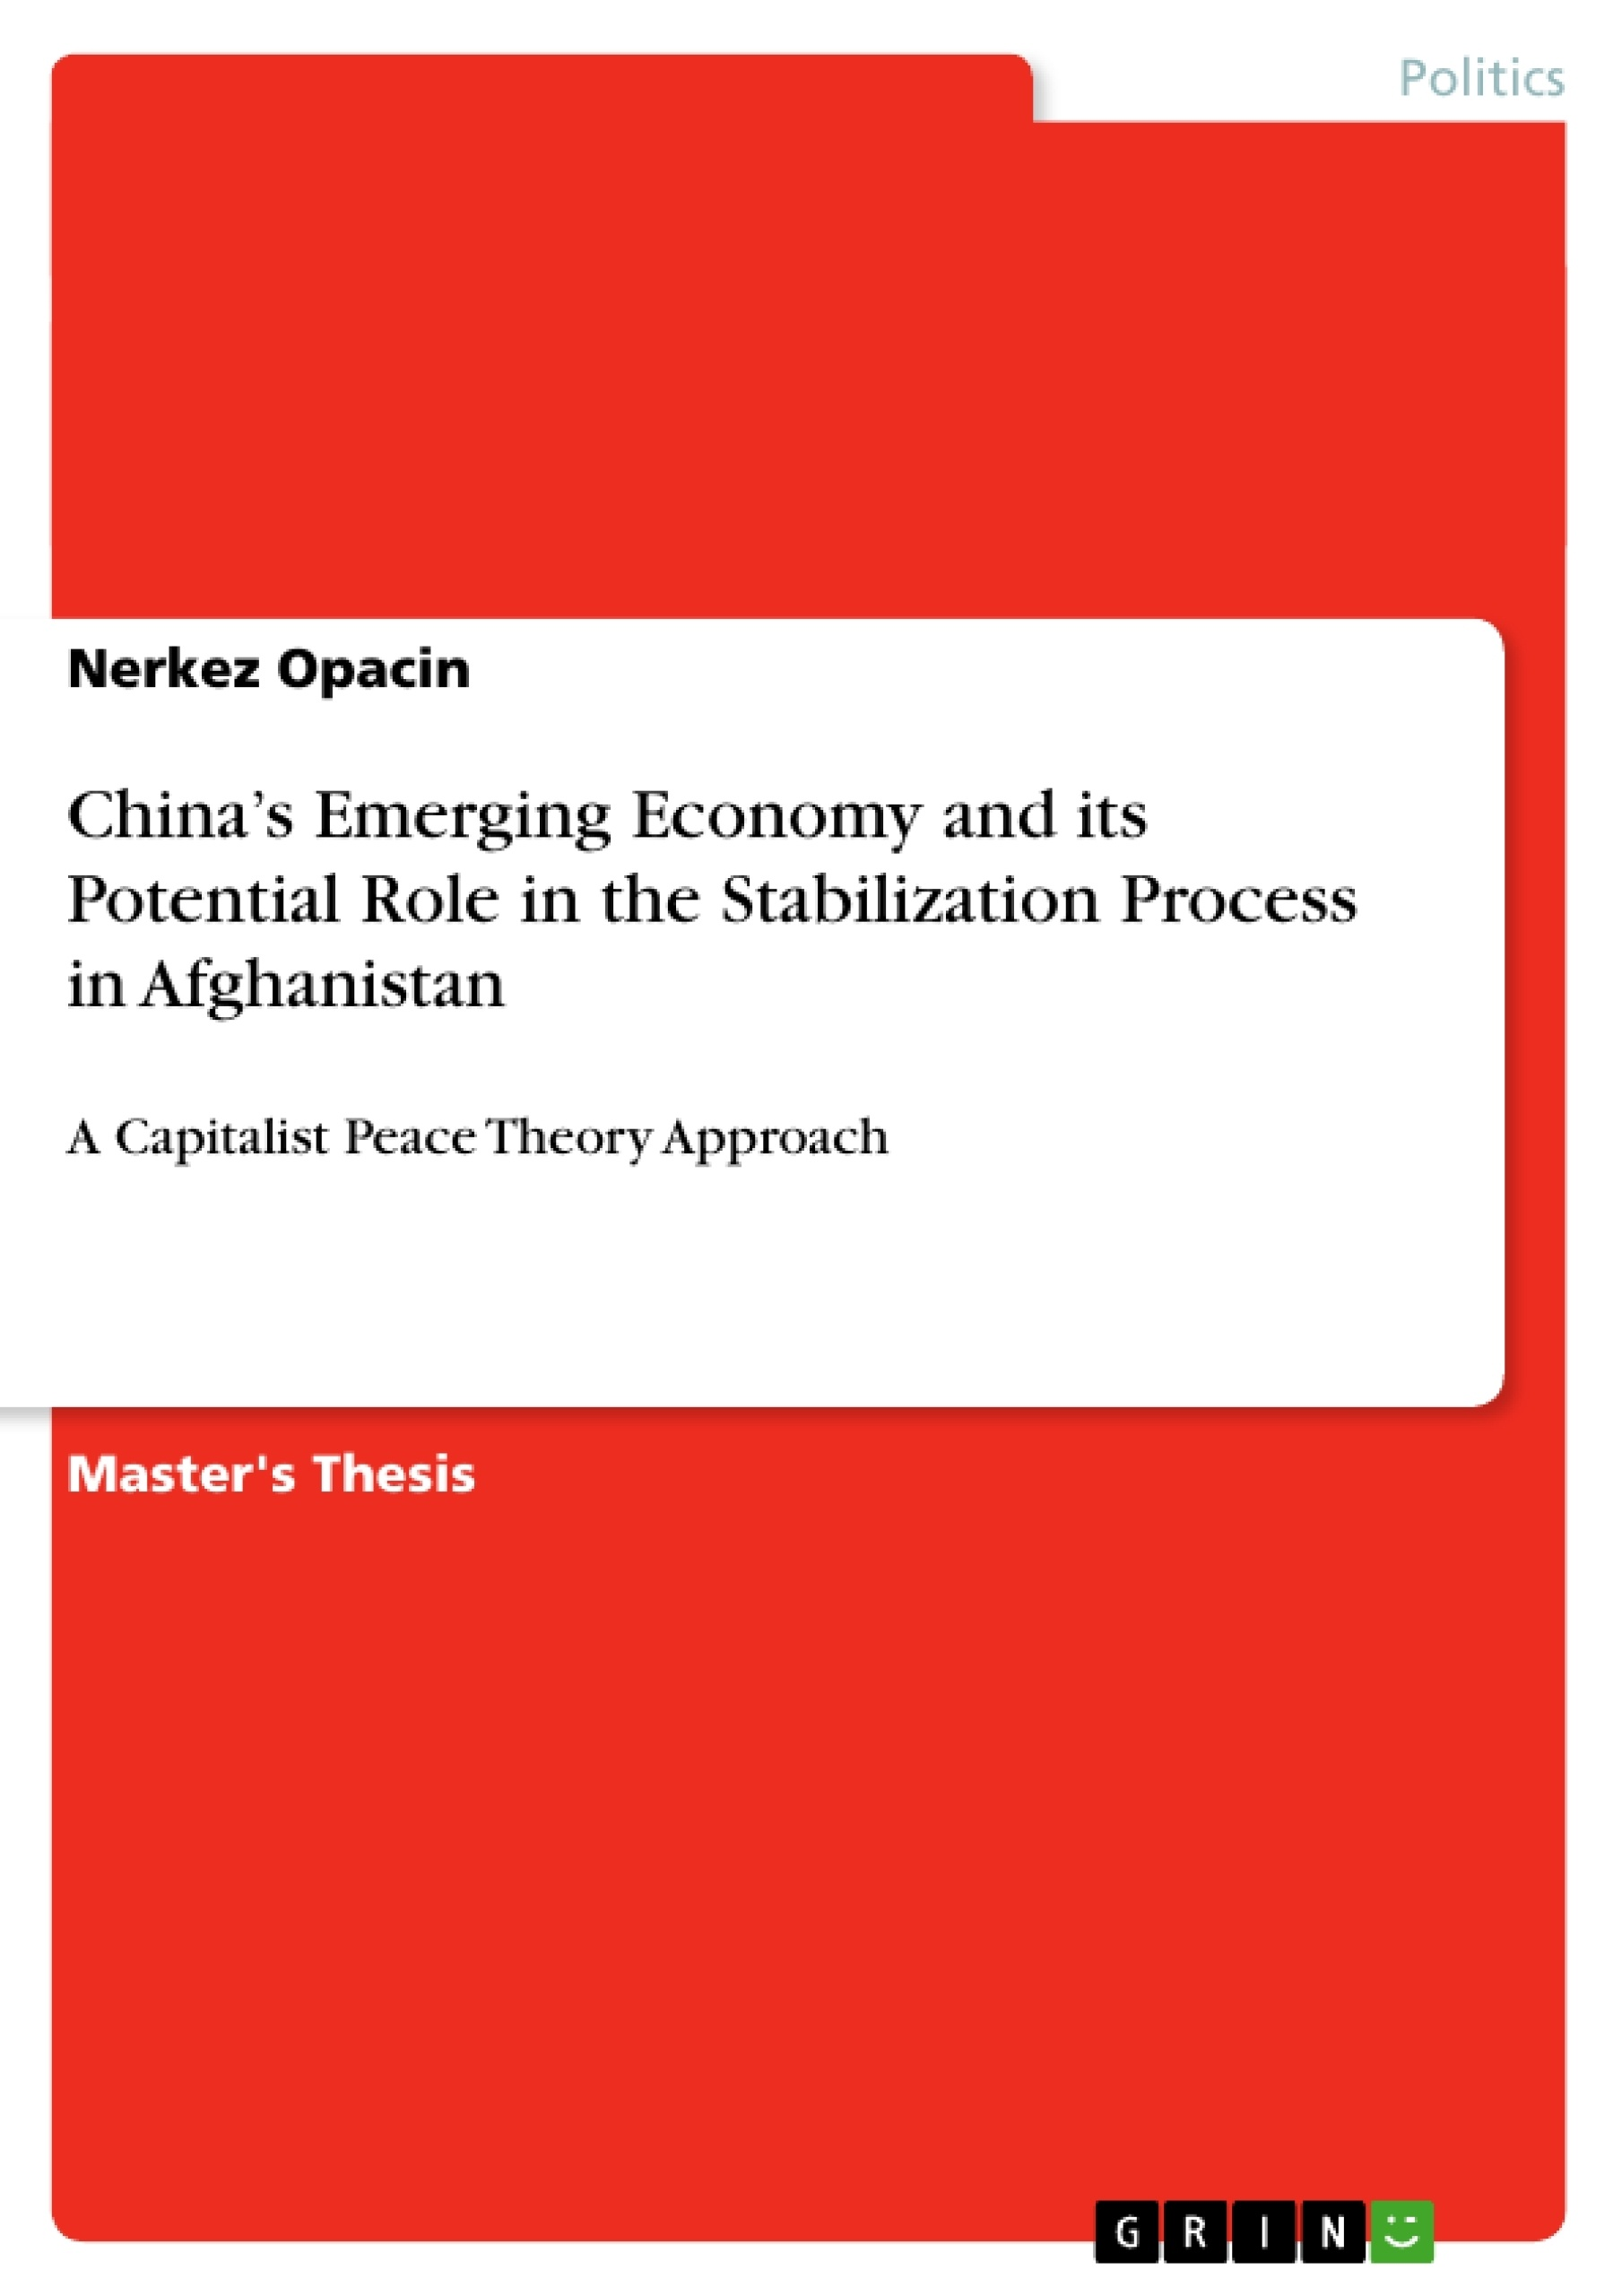 Title: China's Emerging Economy and its Potential Role in the Stabilization Process in Afghanistan